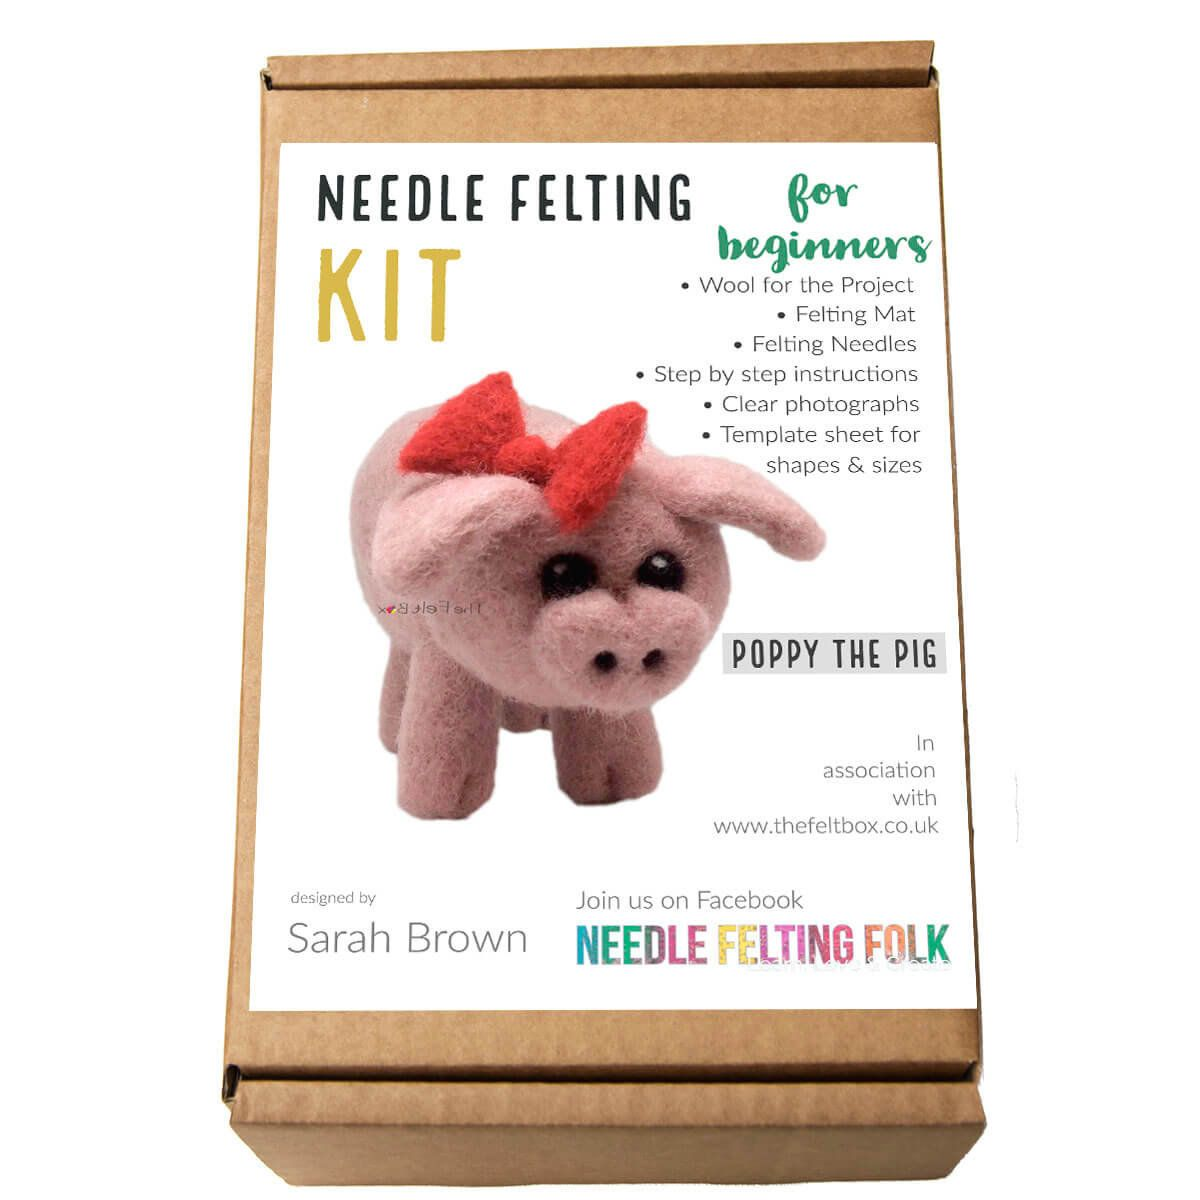 A Beginners Guide To Needle Felting The Homemakery Blog Needle Felting Needle Felting Tools Needle Felting Tutorials